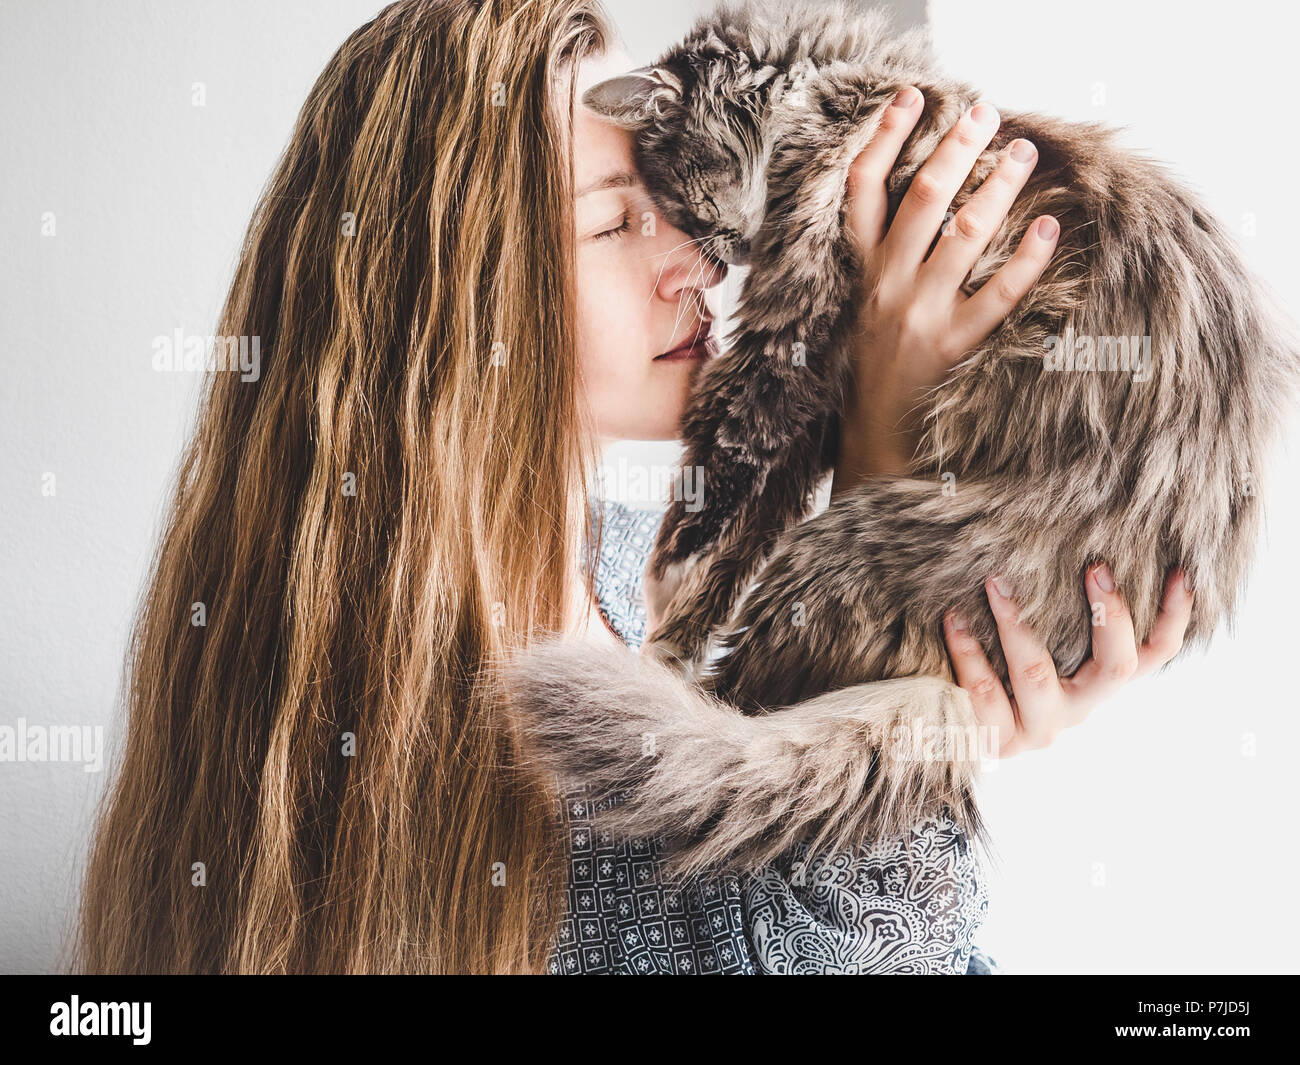 Stylish woman and fluffy kitten - Stock Image